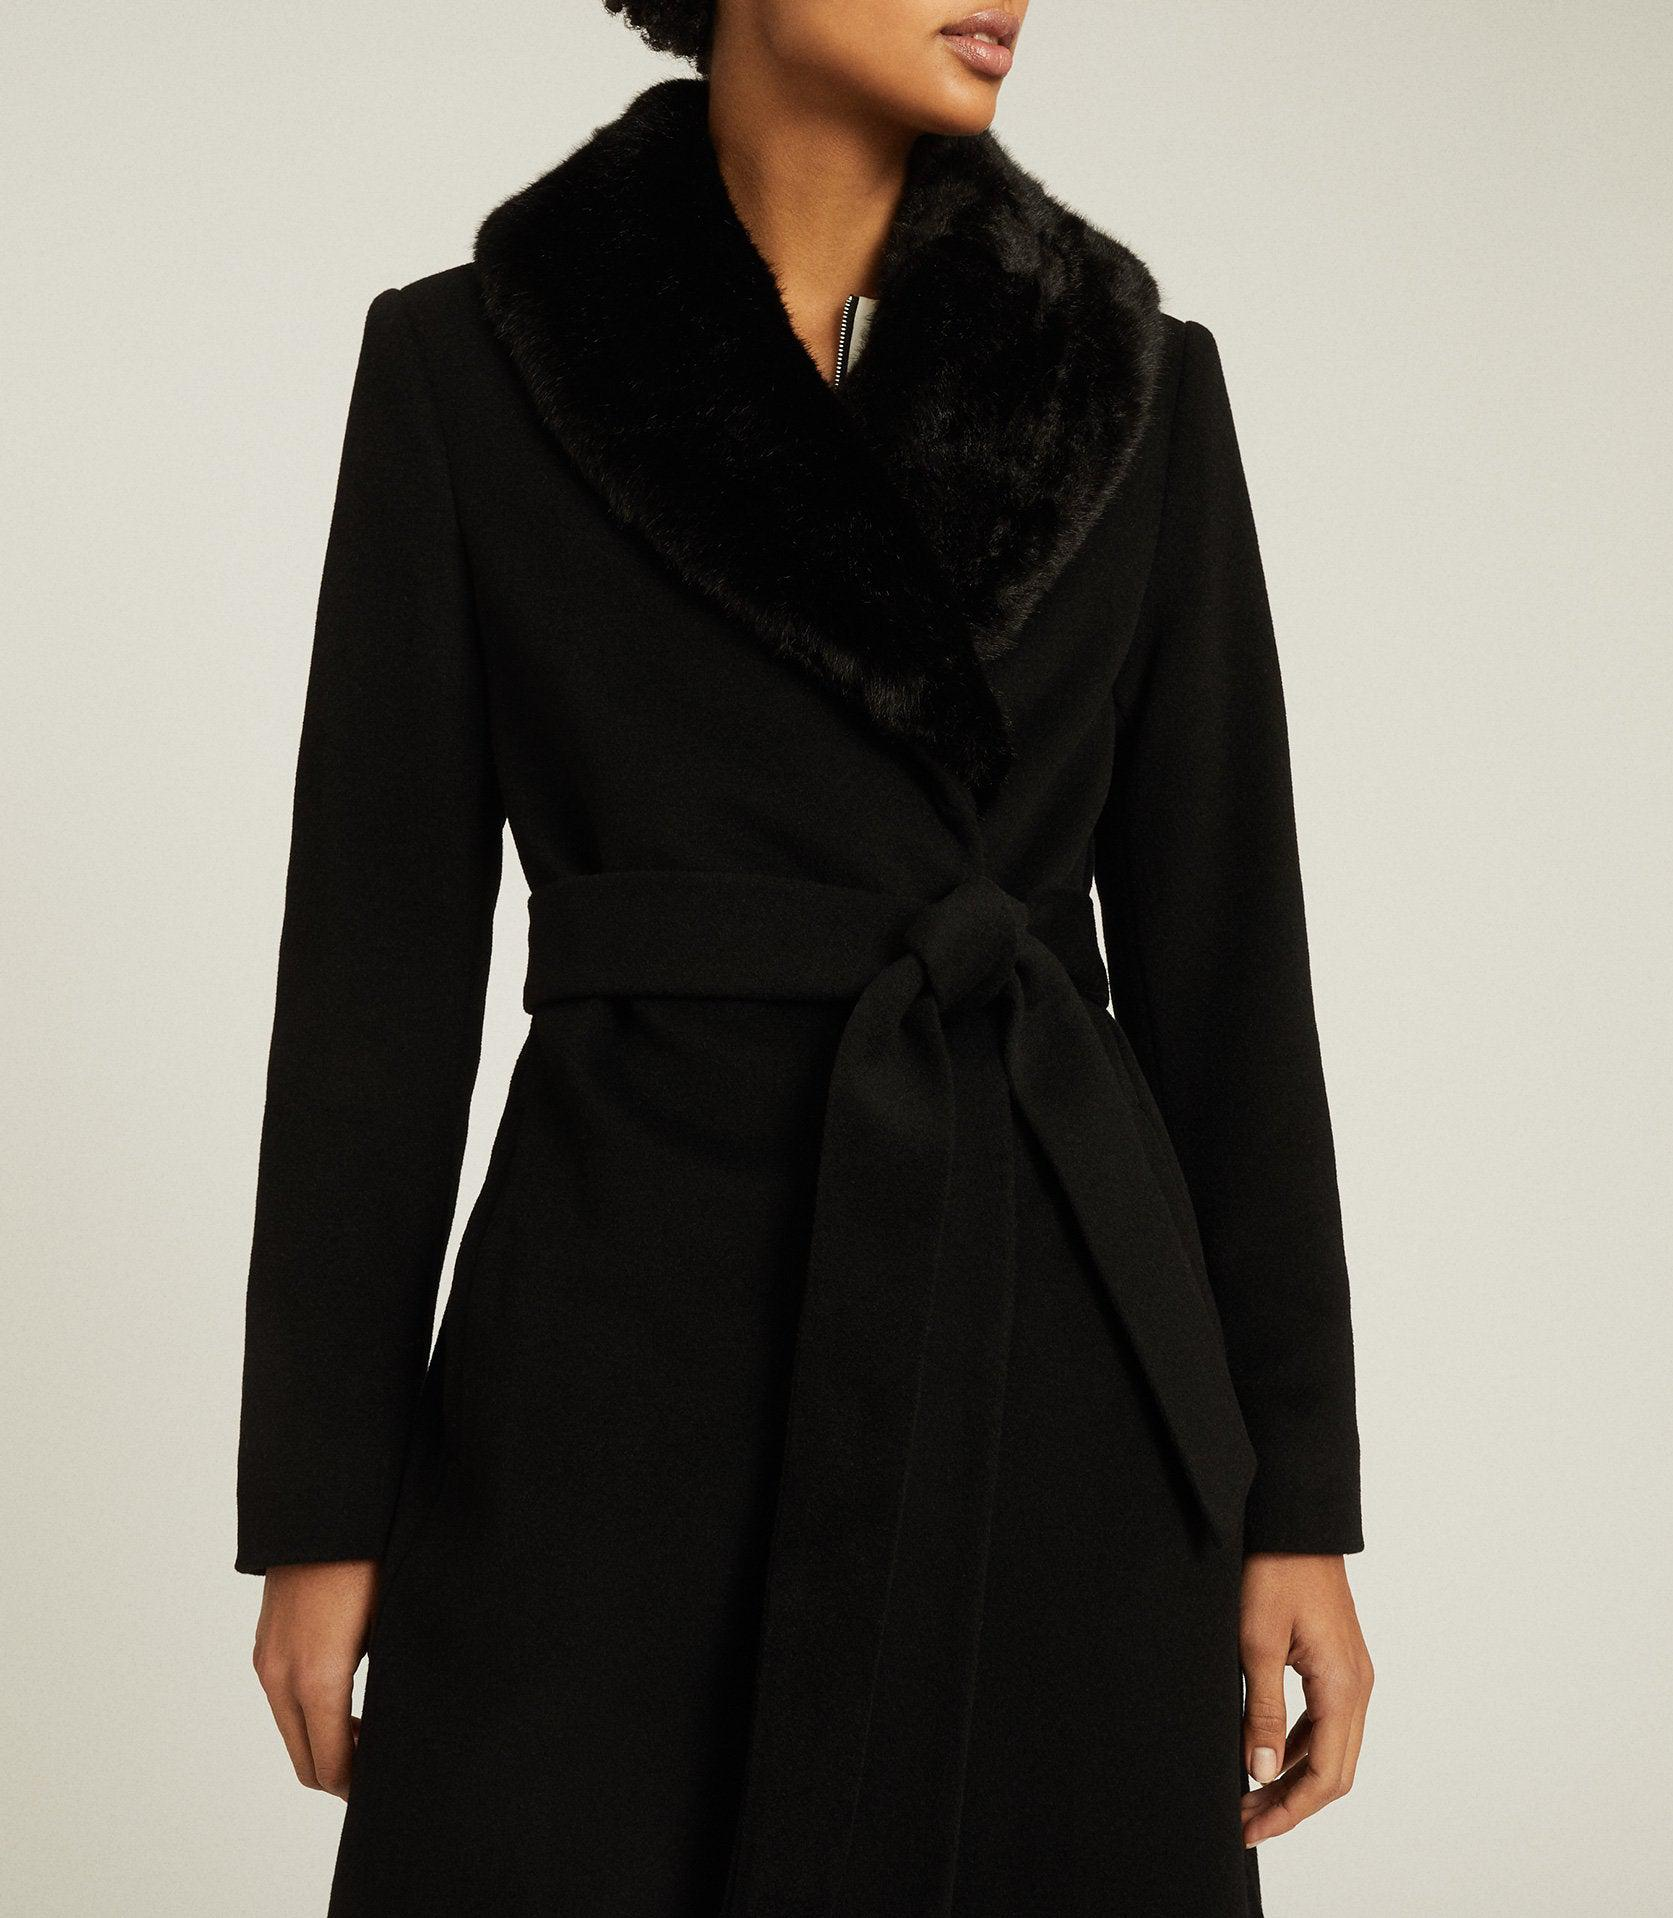 PACEY - FAUX FUR SHAWL COLLAR OVERCOAT 2